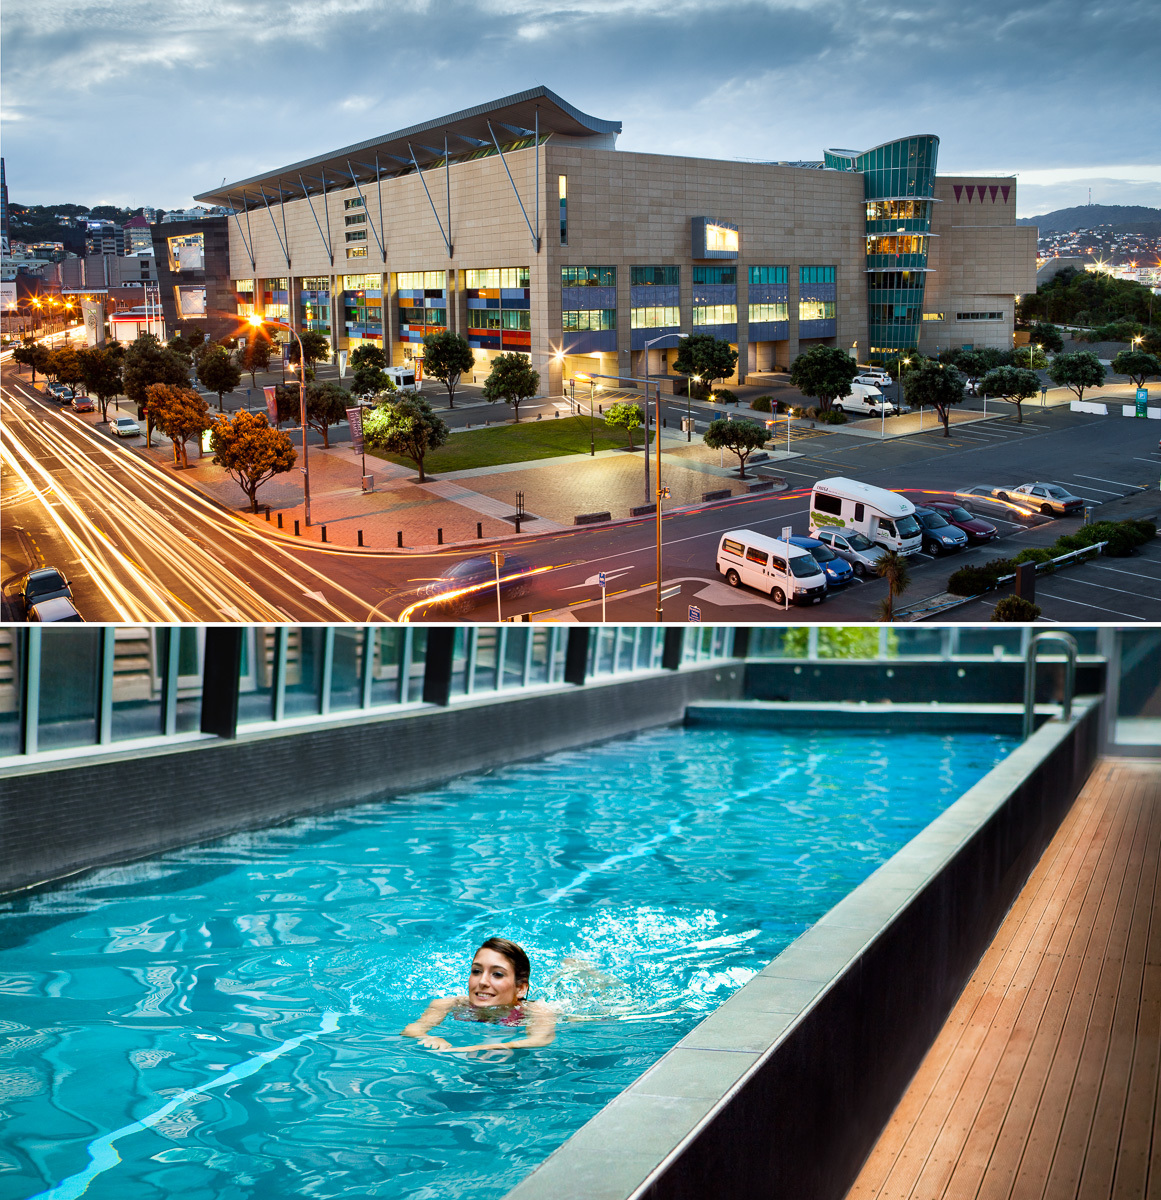 Hotel Pool and Tepapa at Dusk